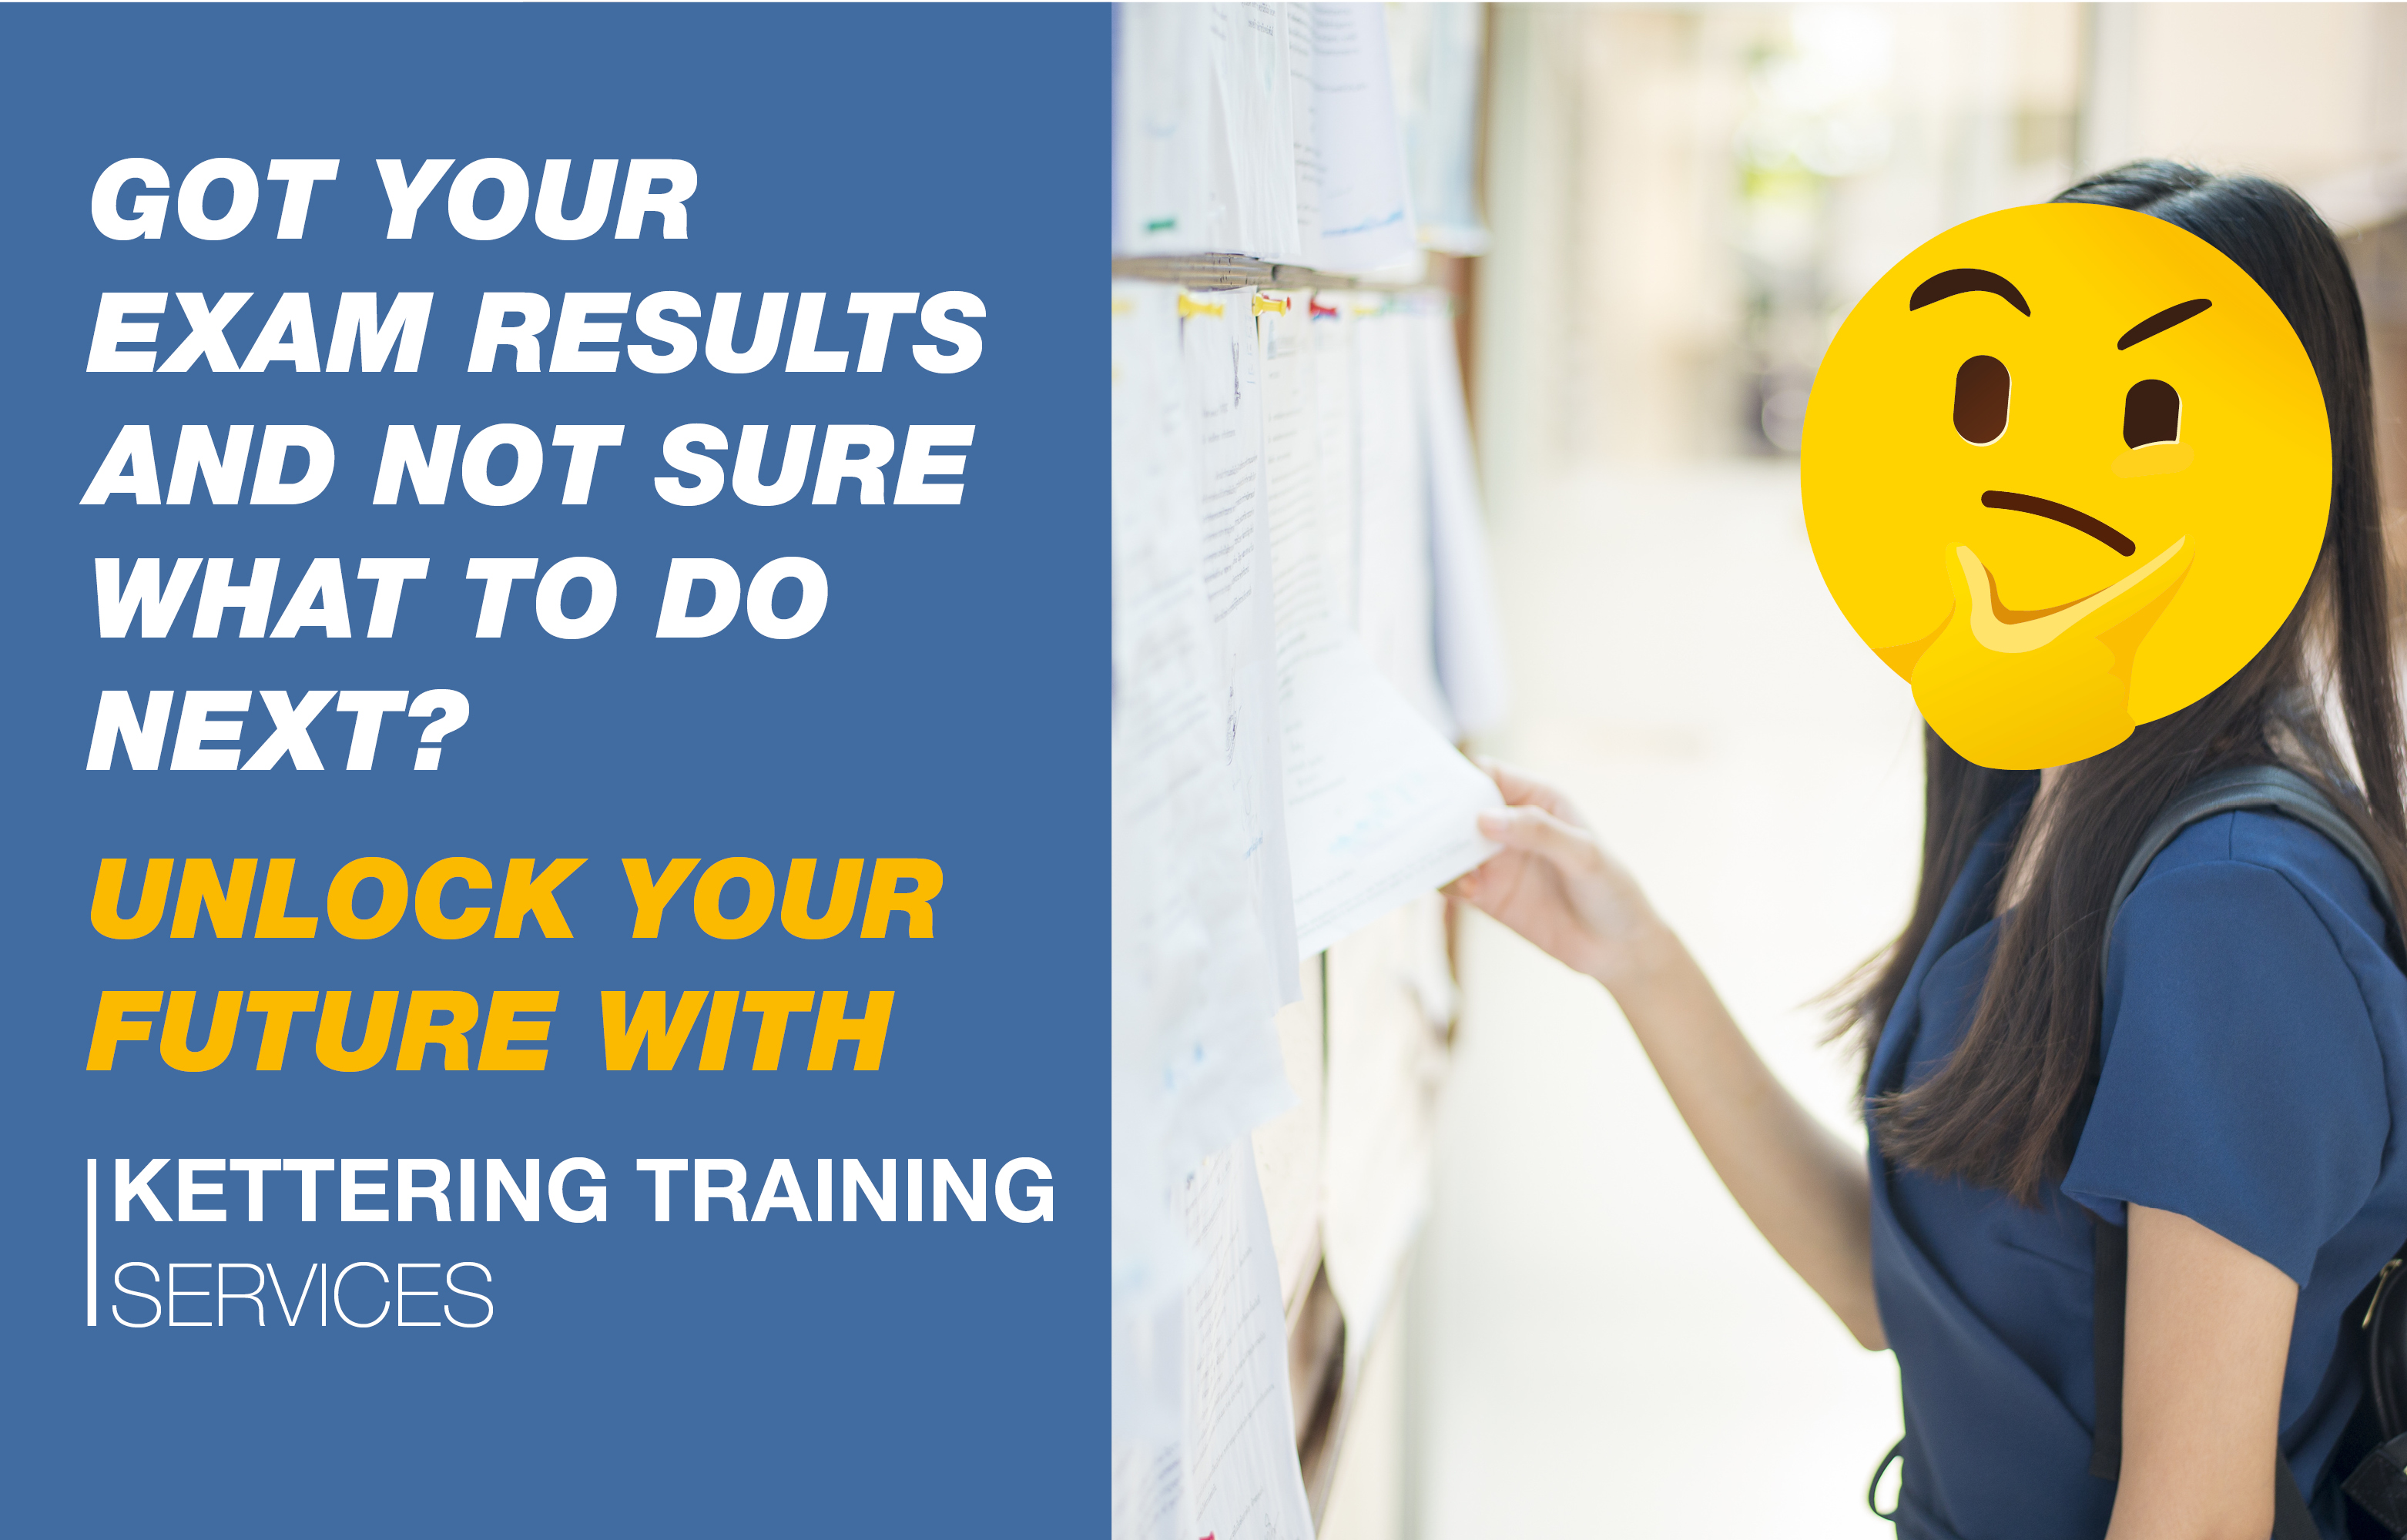 Kettering Training Services can help once you have got your exam results.